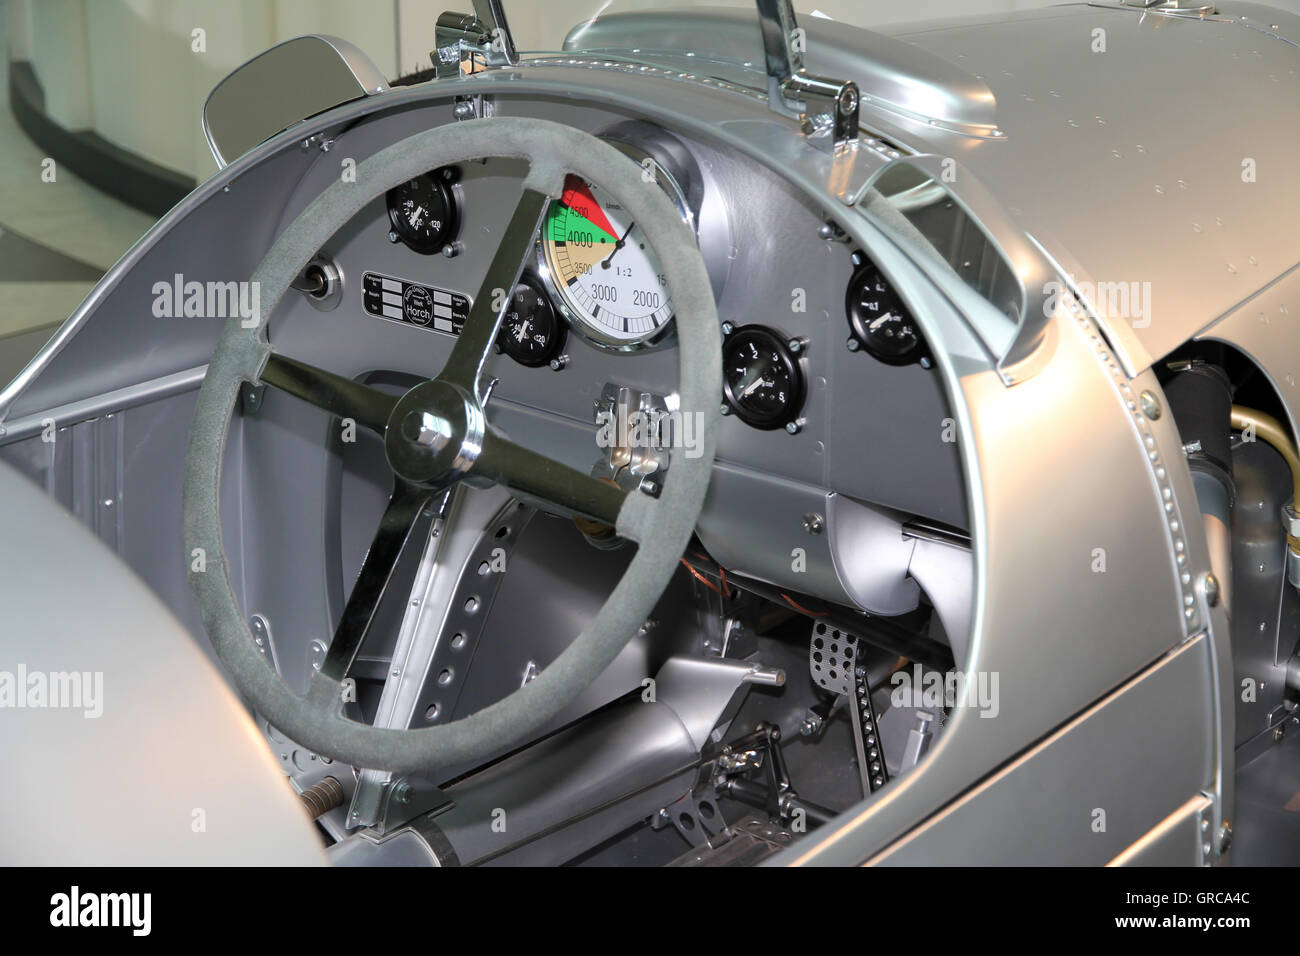 Cockpit From Al Old Racing Car Stock Photo: 117670684 - Alamy